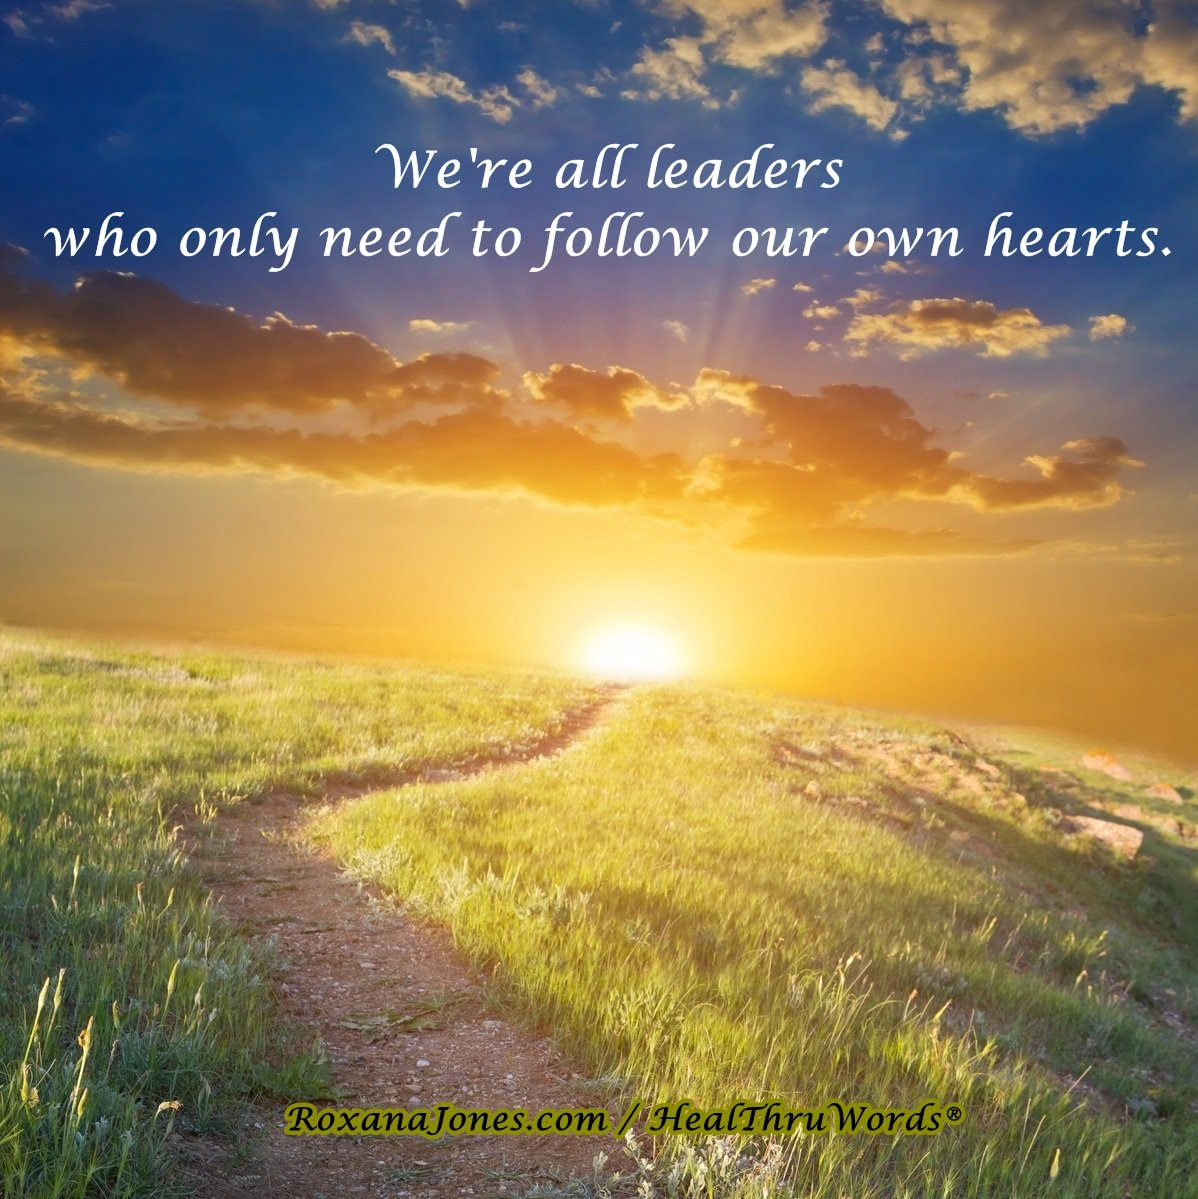 Inspirational Image: Leaders of the Heart